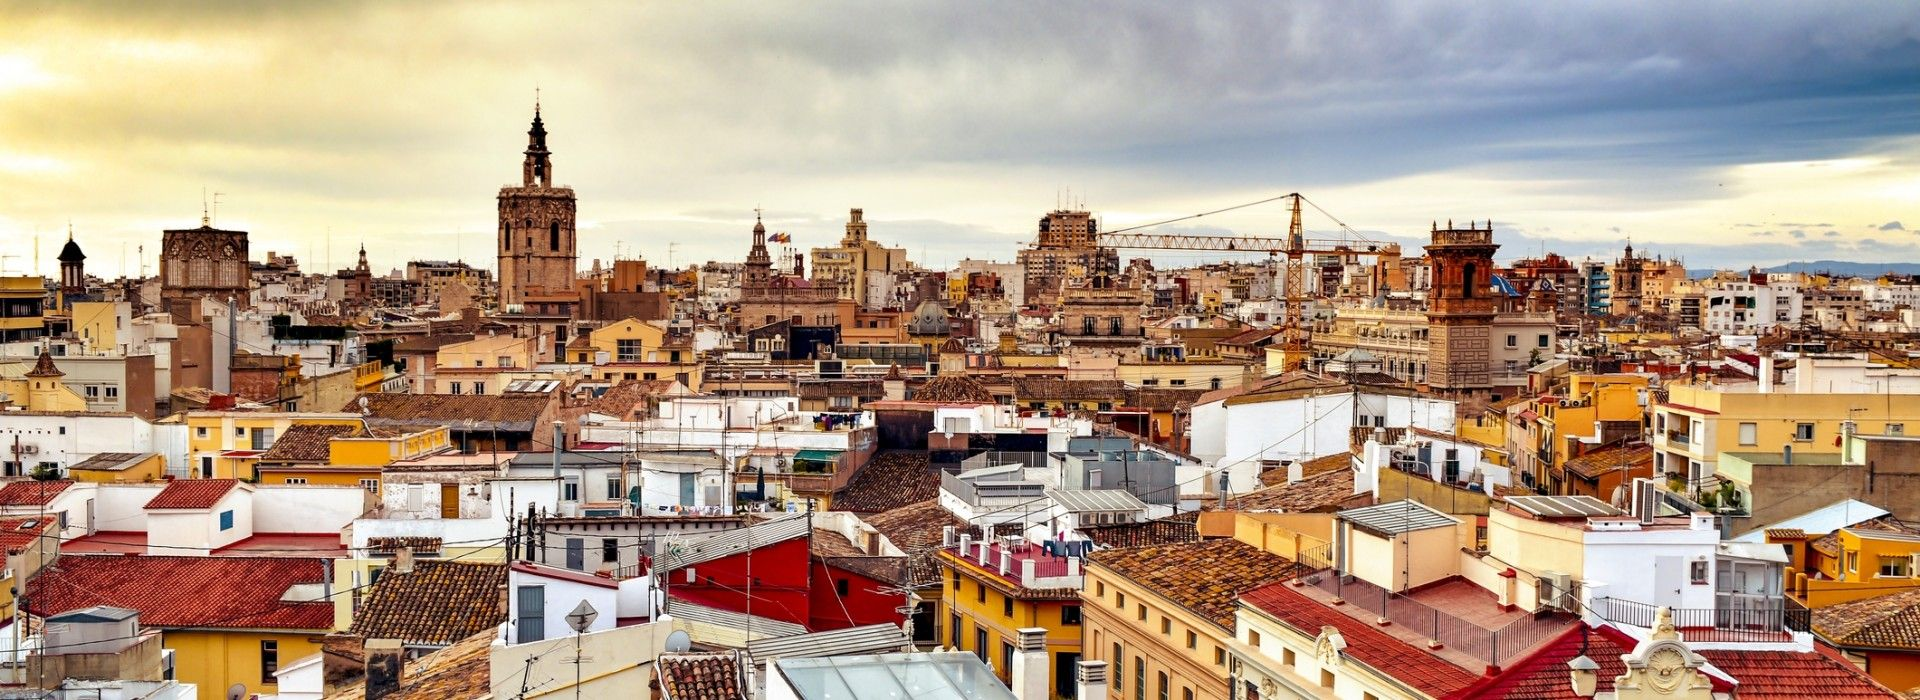 Valencia - Tour Highlights and Travel Tips